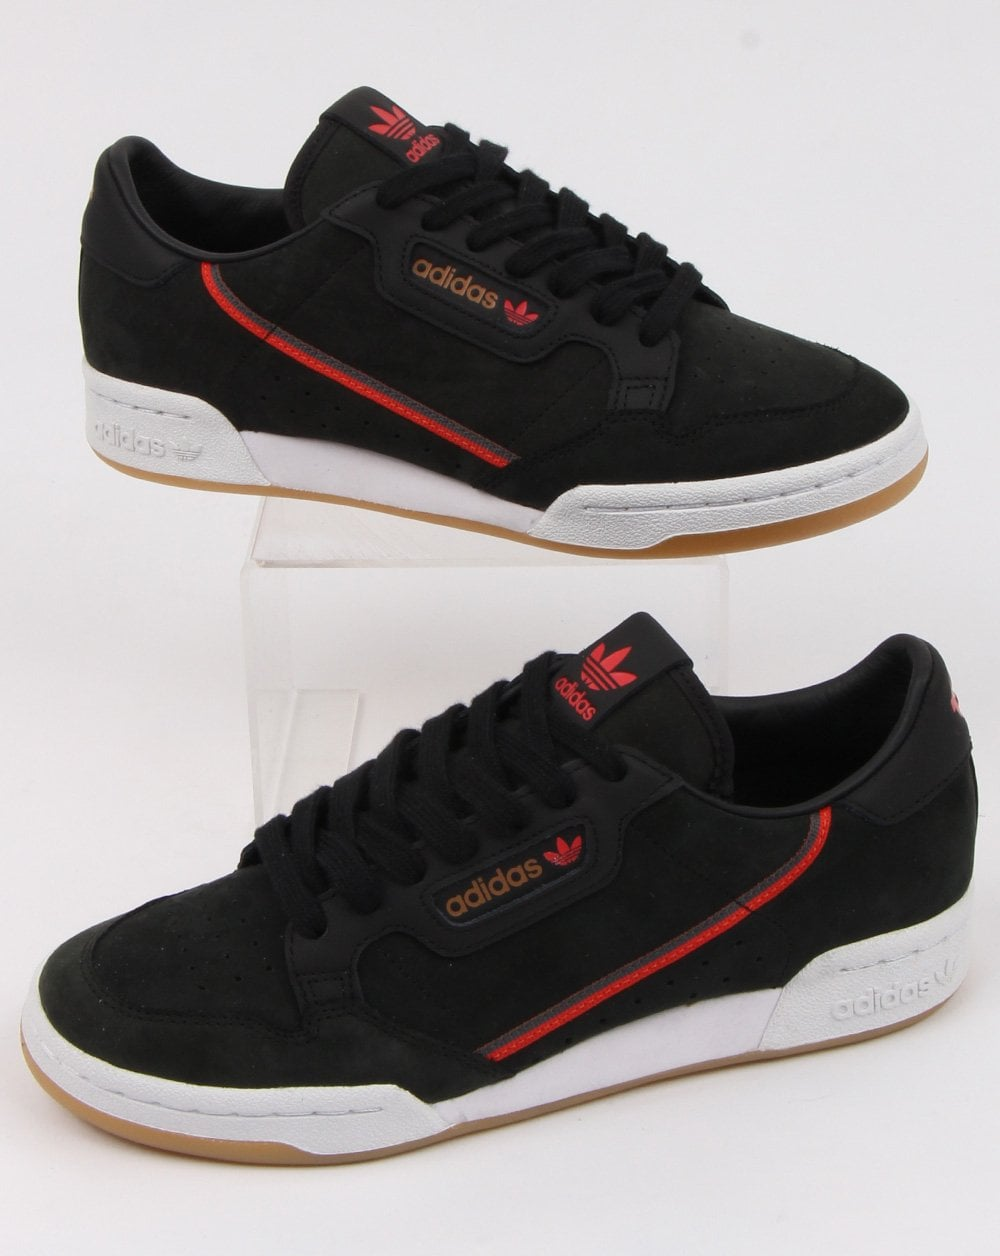 buy online c5ac3 e4b94 Adidas Continental 80 x TFL Trainers Black/red/brown